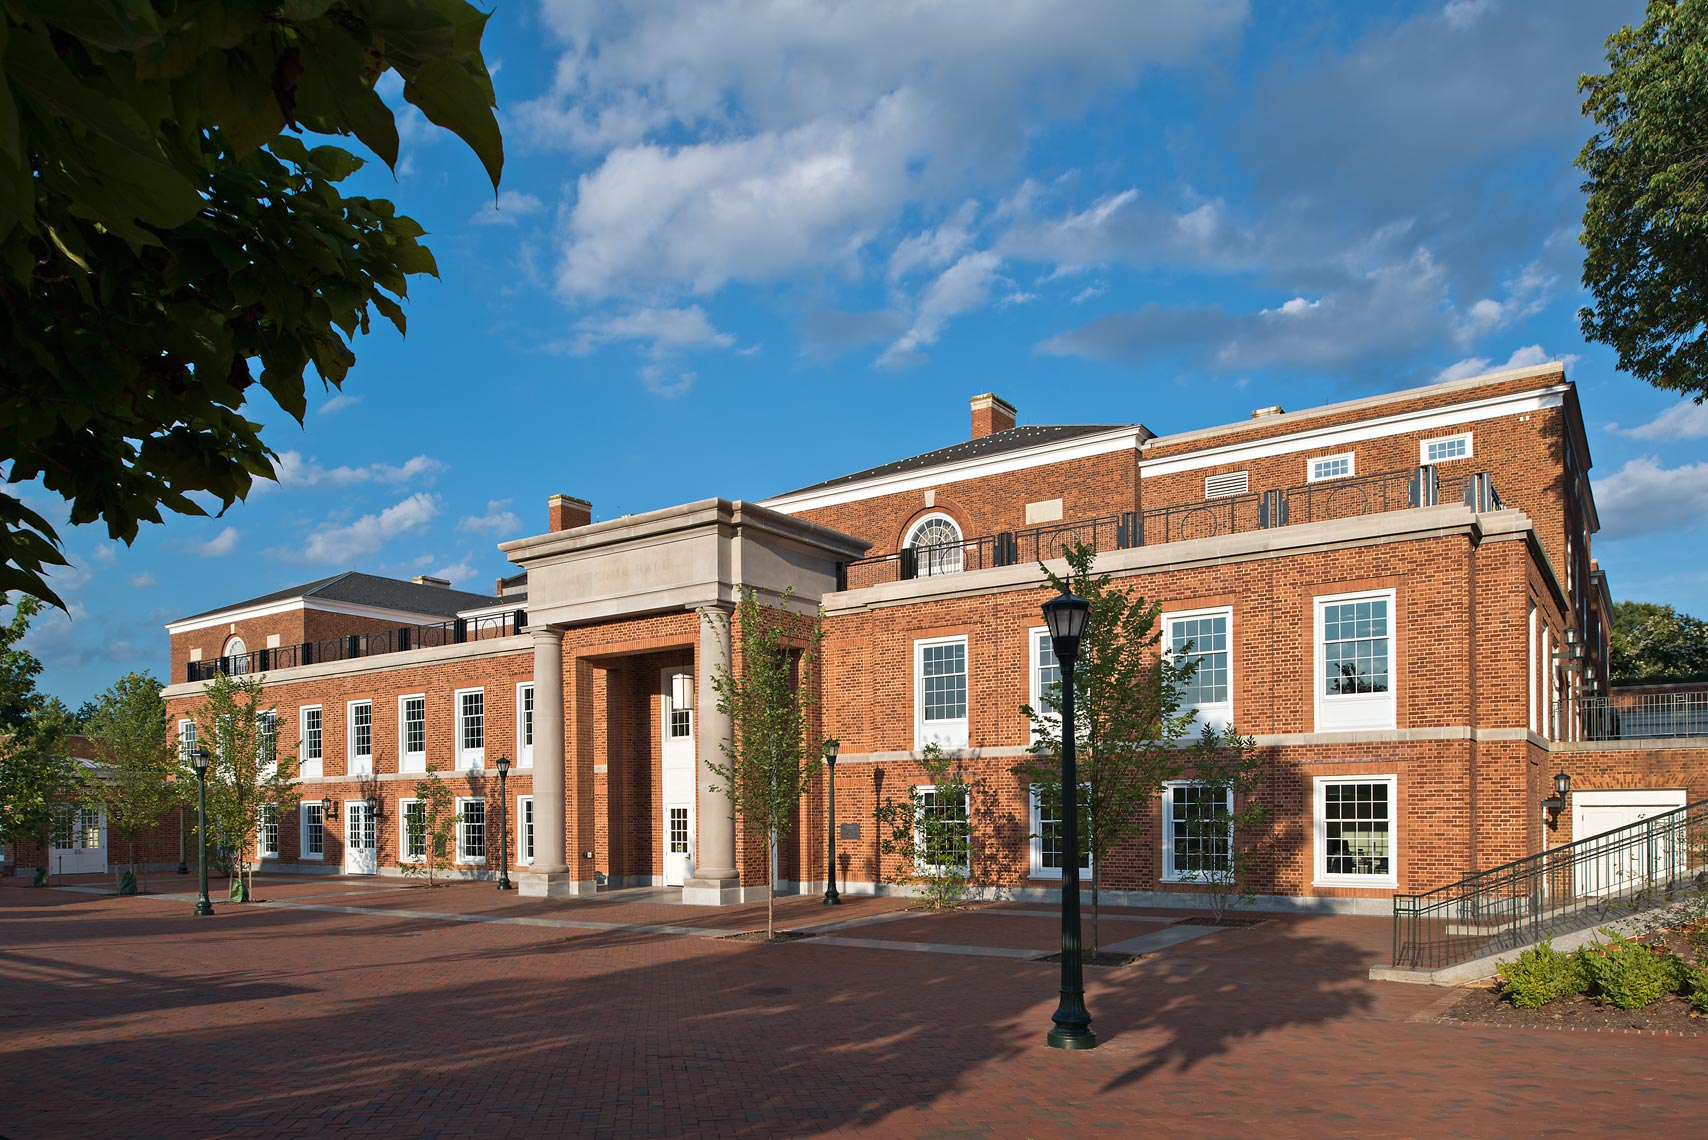 washingtondccommercialarchitecturecoledenny_universityofvirginia_photographs_15